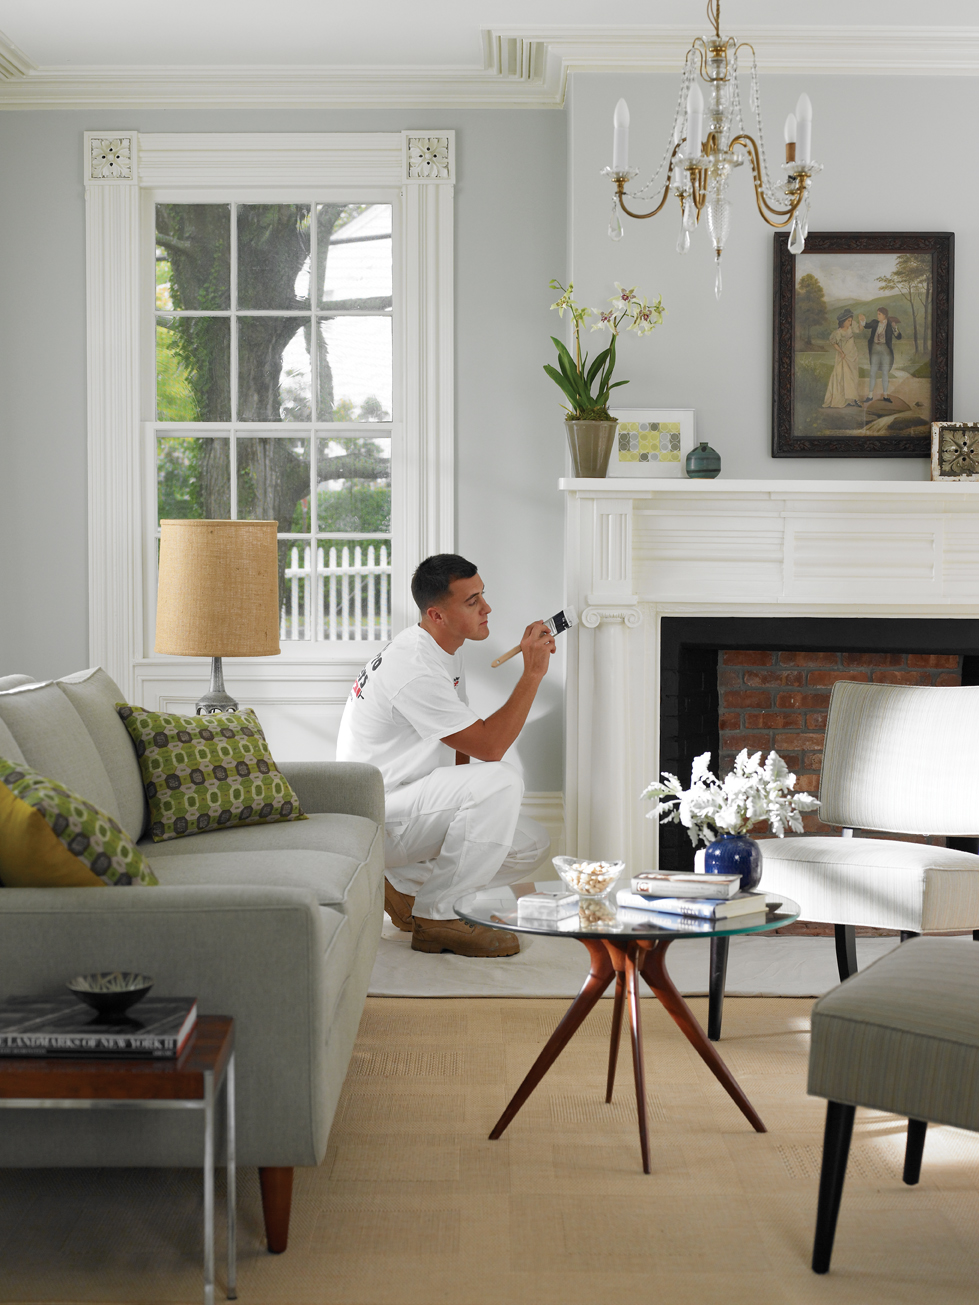 Interior house painting tips cleveland artisans - Home interior painters ...